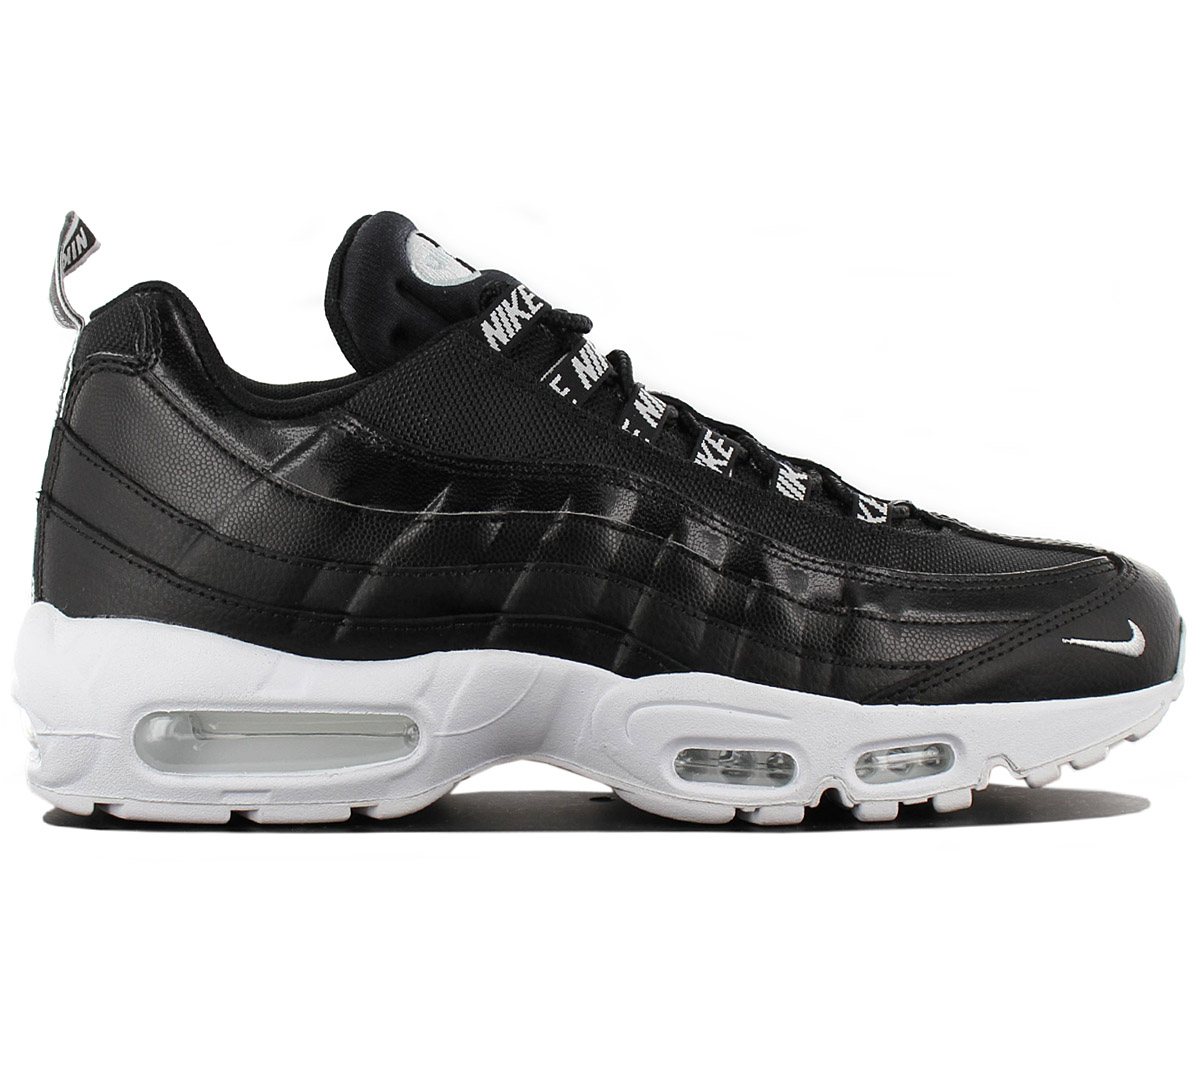 Details about Nike Air Max 95 Premium Men's Sneakers Shoes Black 538416 020 Gym Shoe New